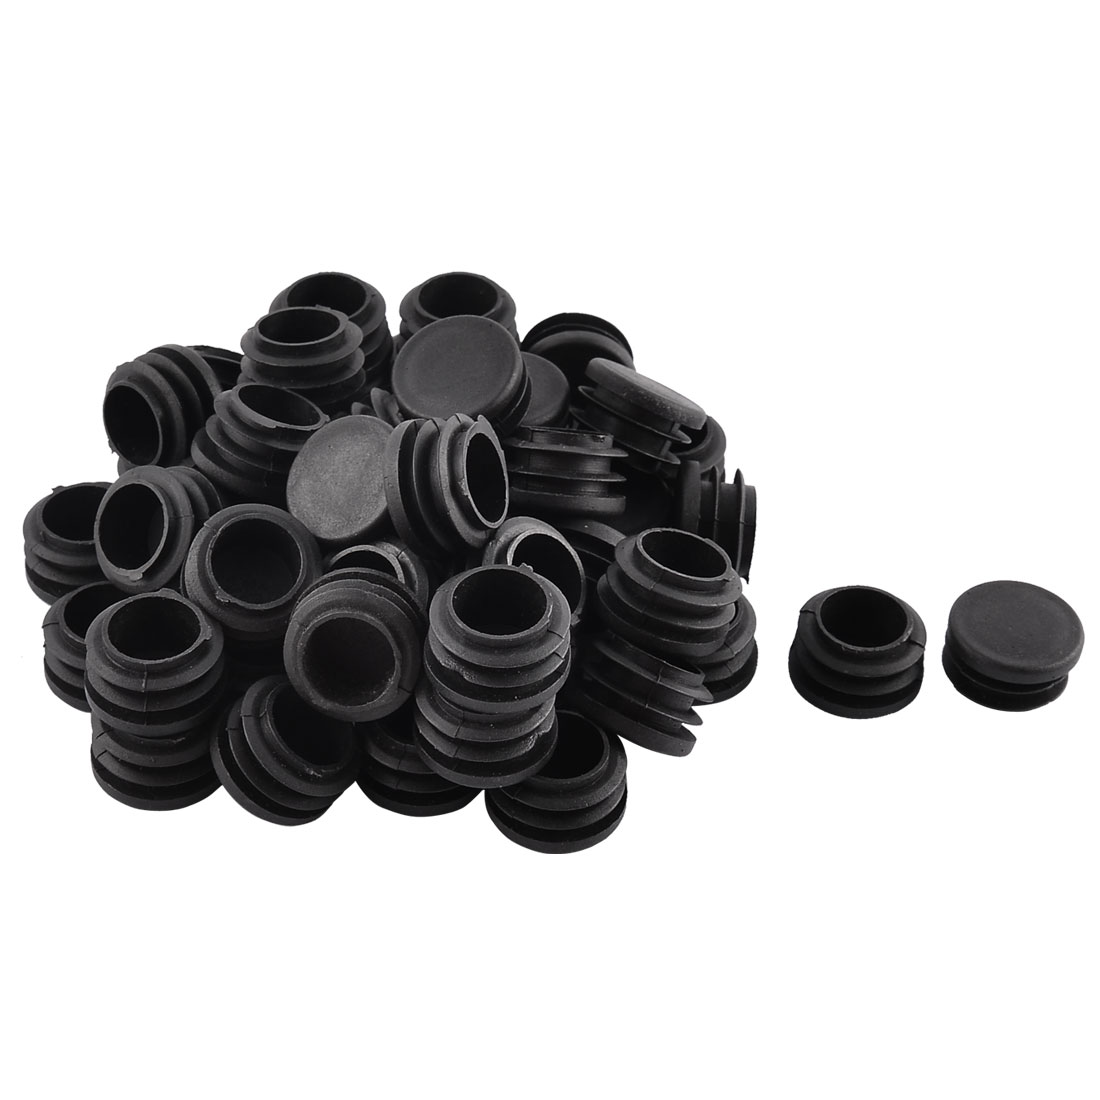 Household School Plastic Round Shaped Furniture Table Chair Leg Feet Tube Insert Black 50 Pcs